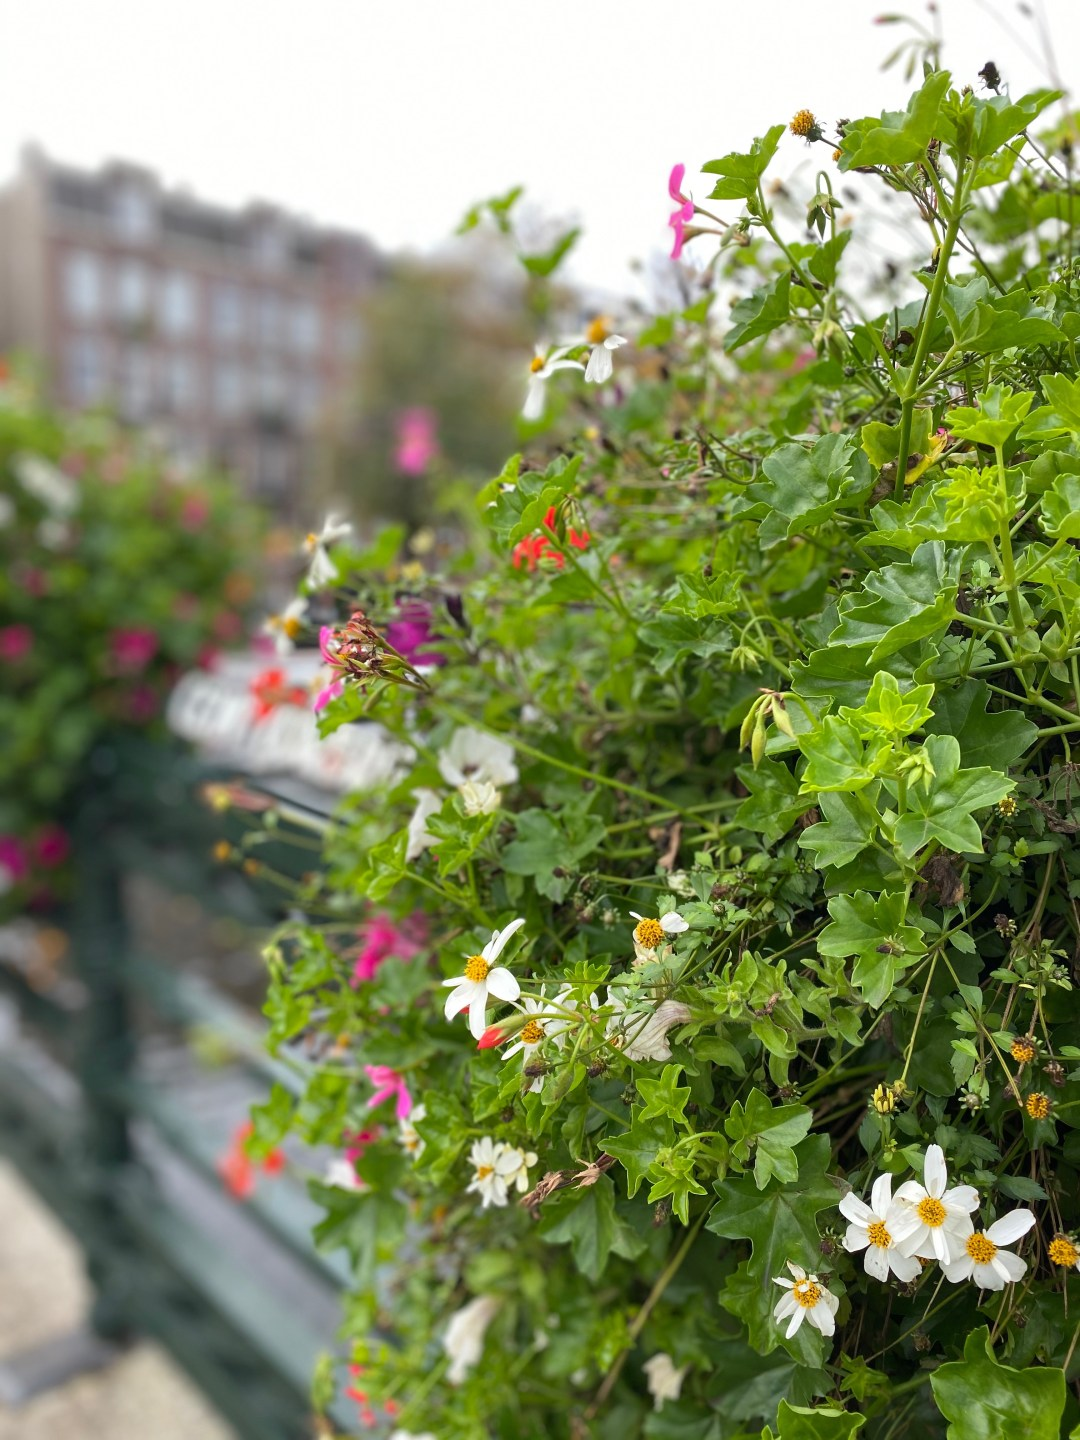 Flowers in focus with houses in the background